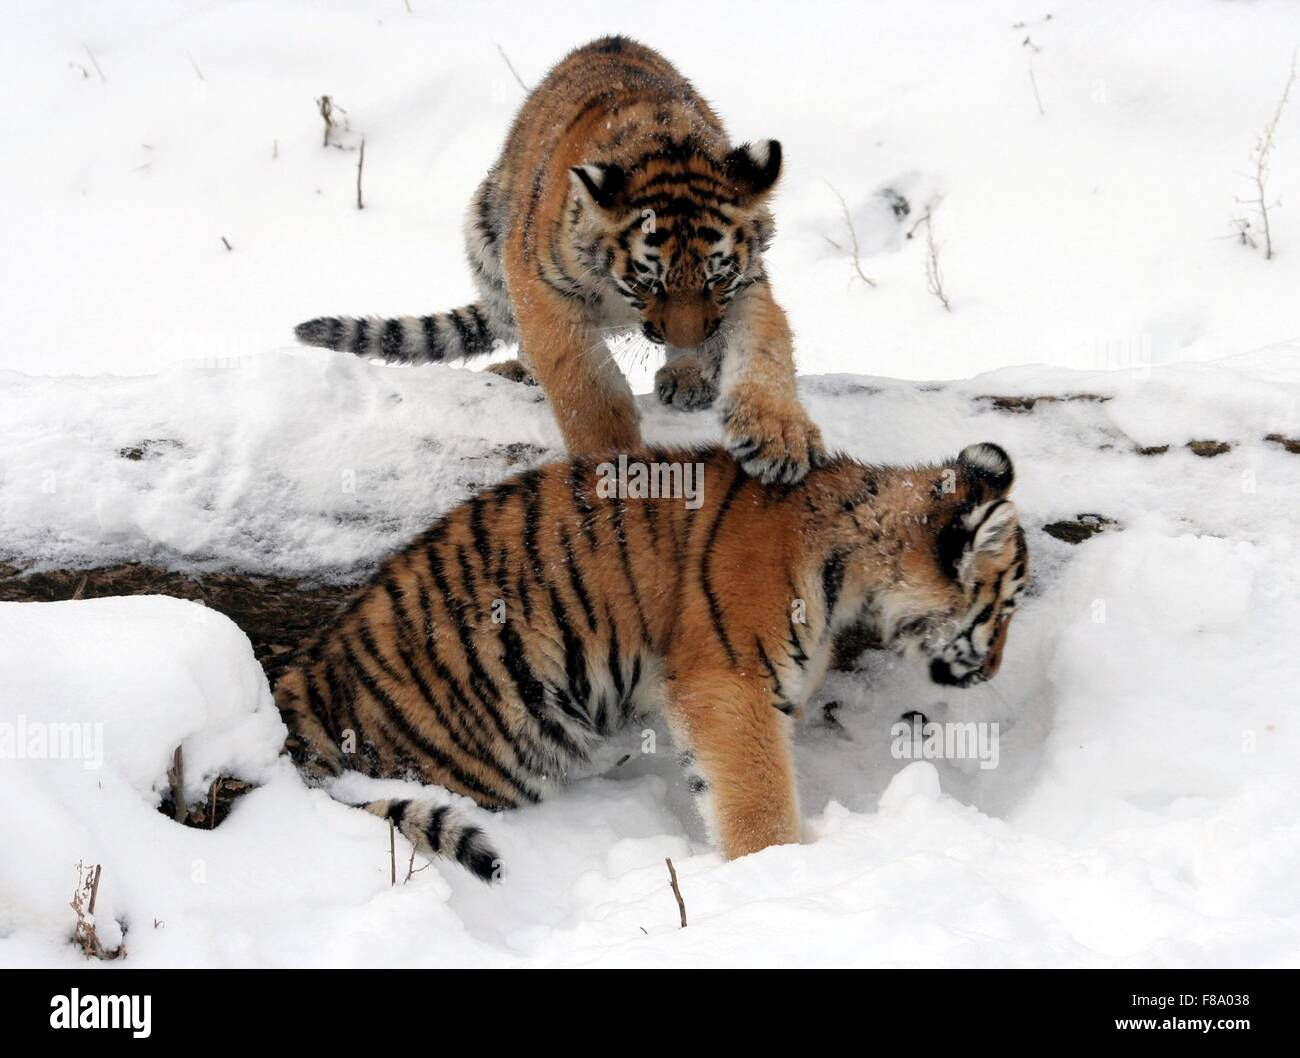 Tiger cubs playing in snow - Stock Image